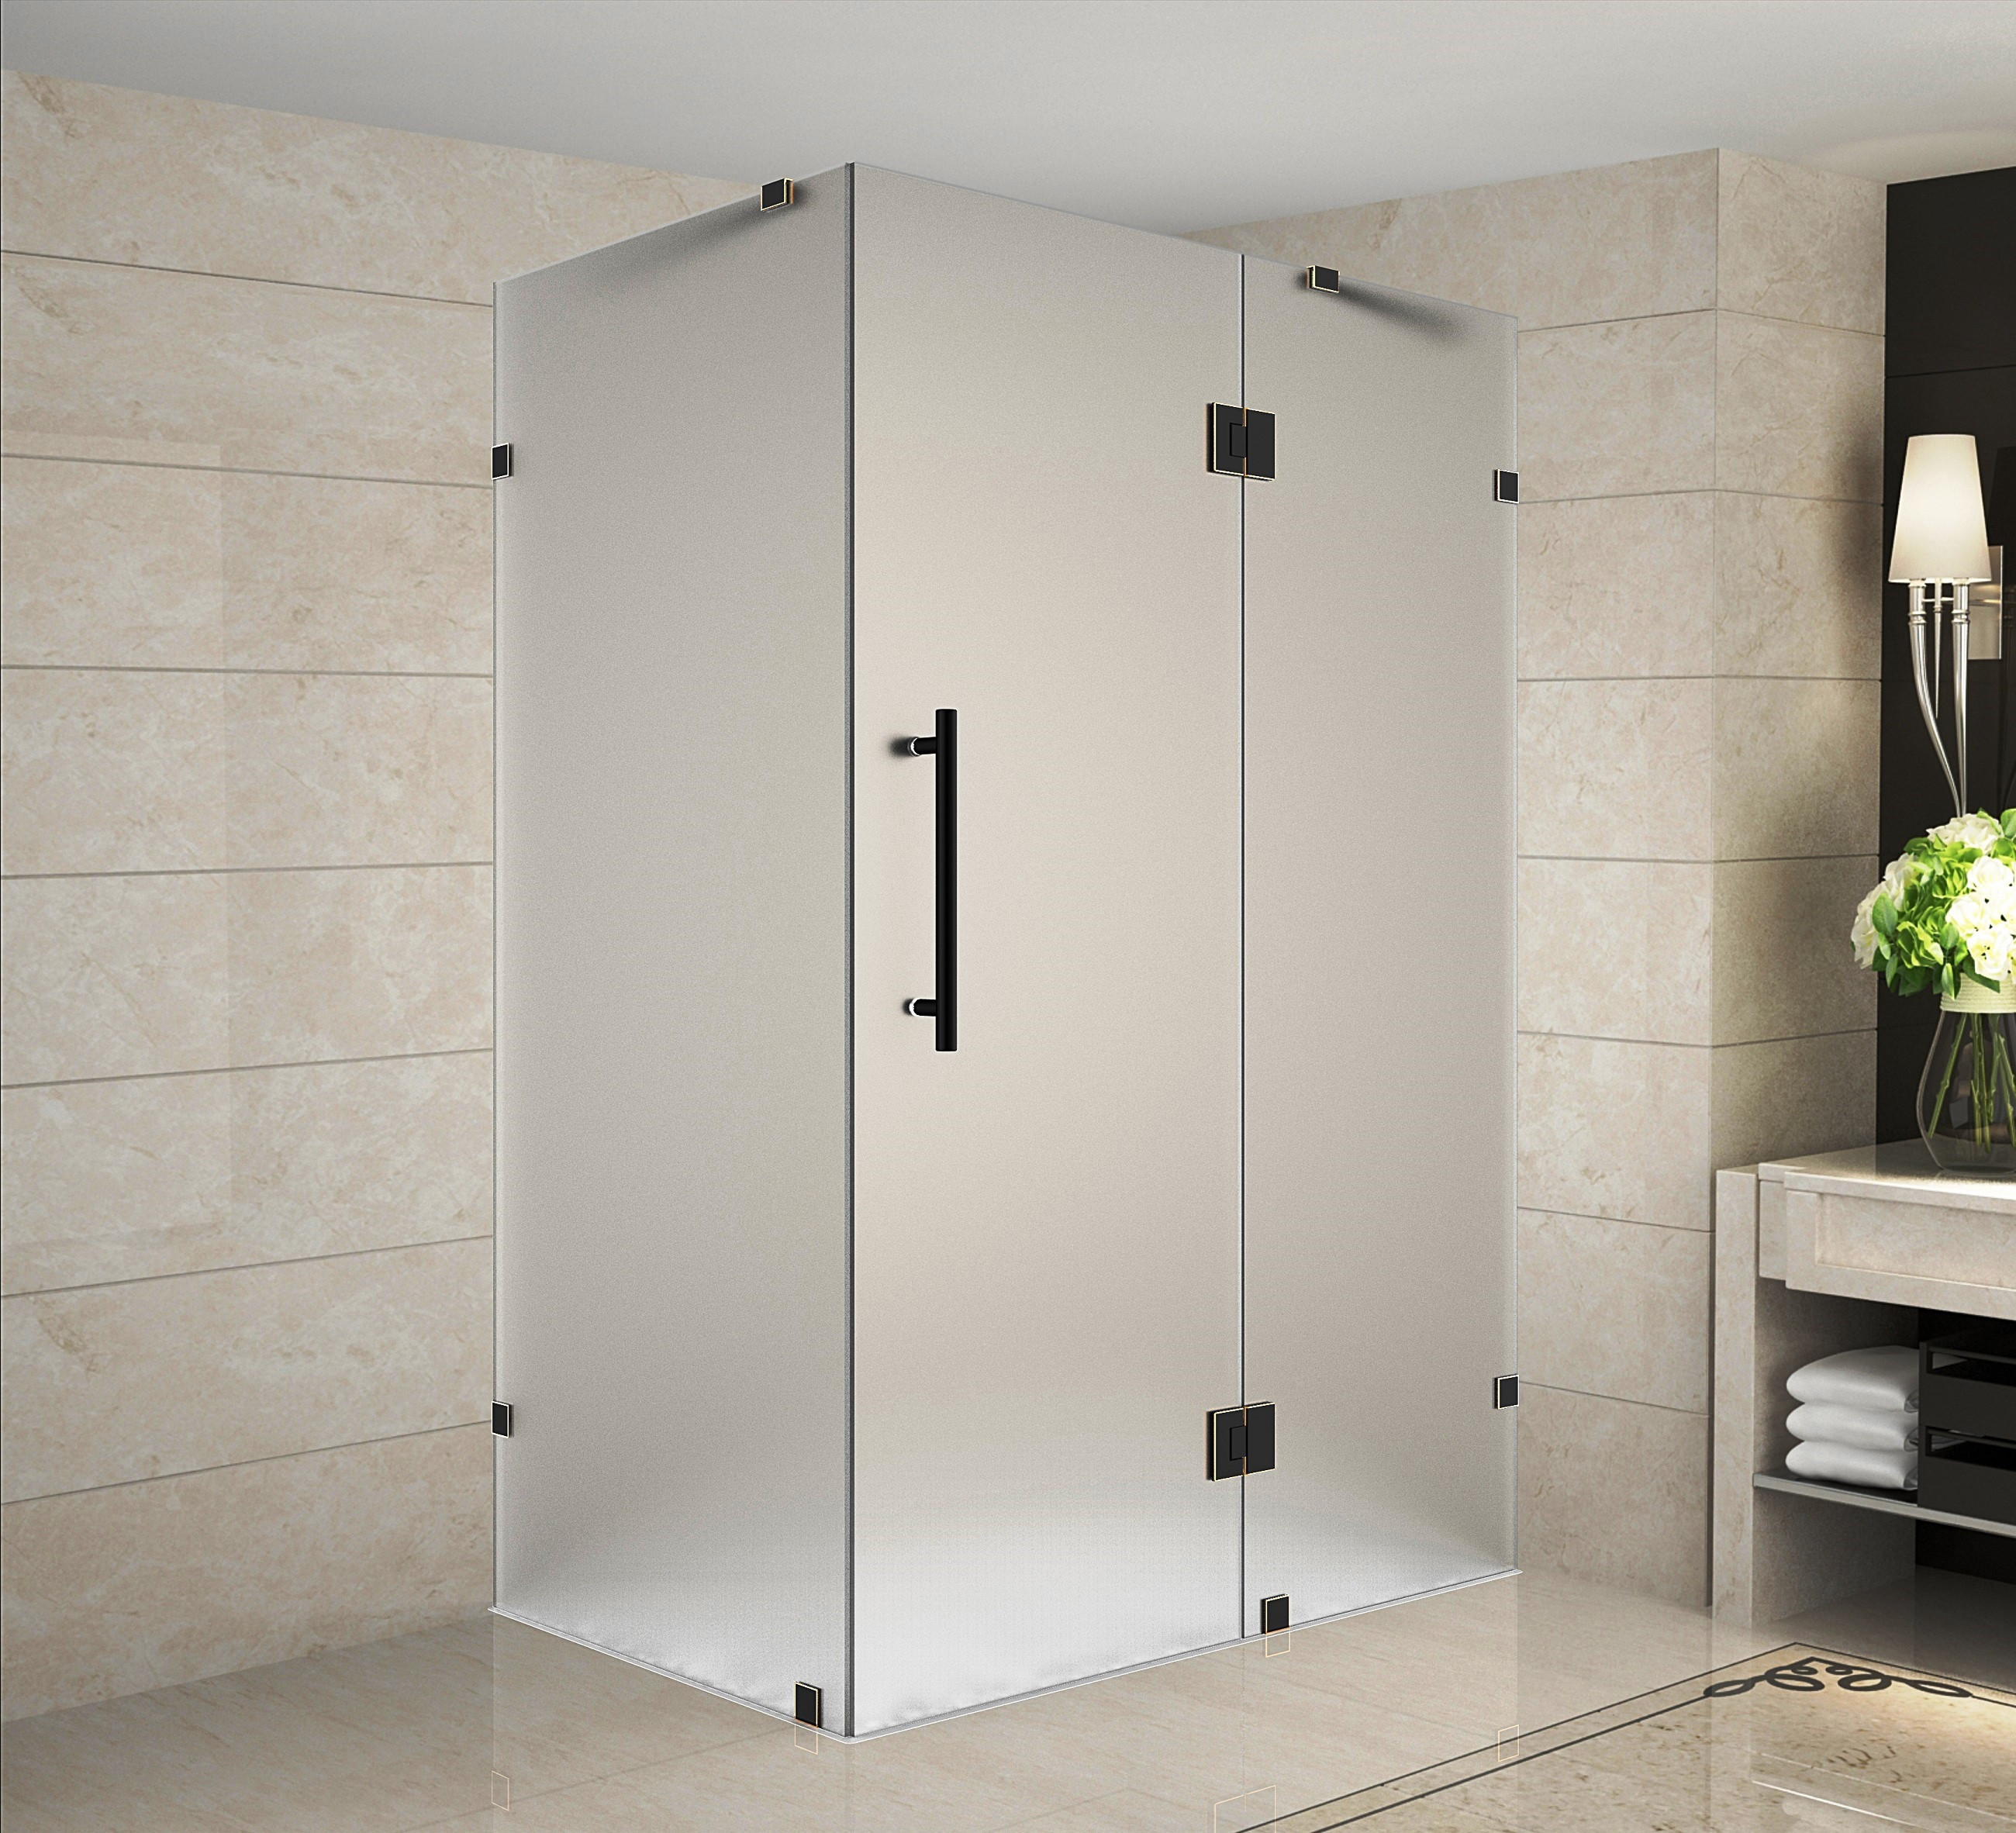 Aston Global SEN987F-ORB-3634-10 Frameless Frosted Glass Shower Enclosure In Oil Rubbed Bronze